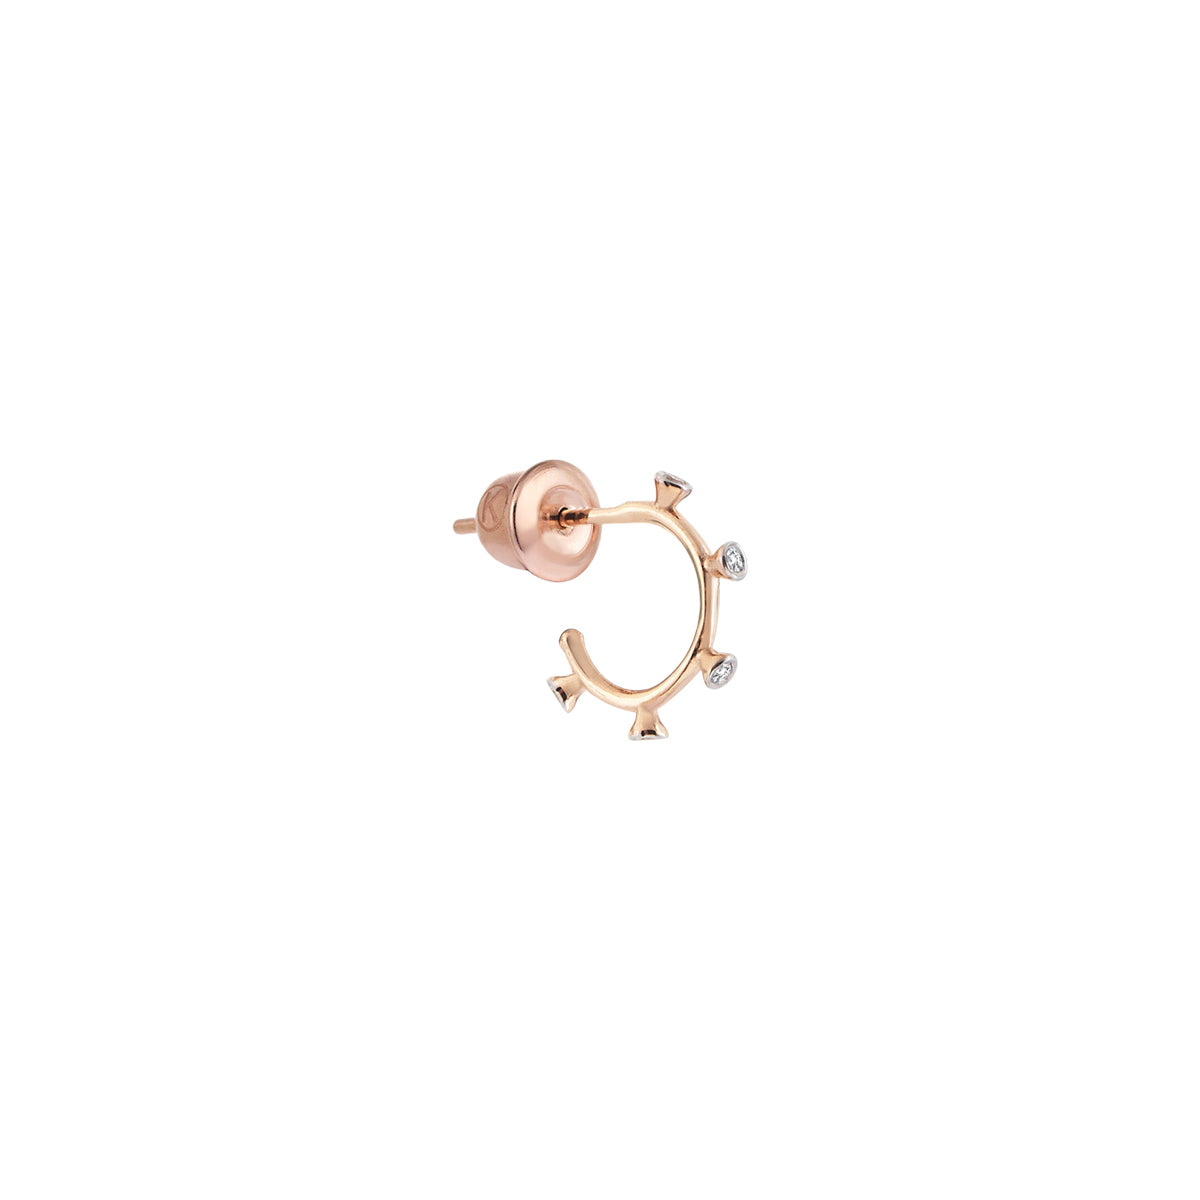 5 Solitaires Hoop Earring by Kismet for Broken English Jewelry